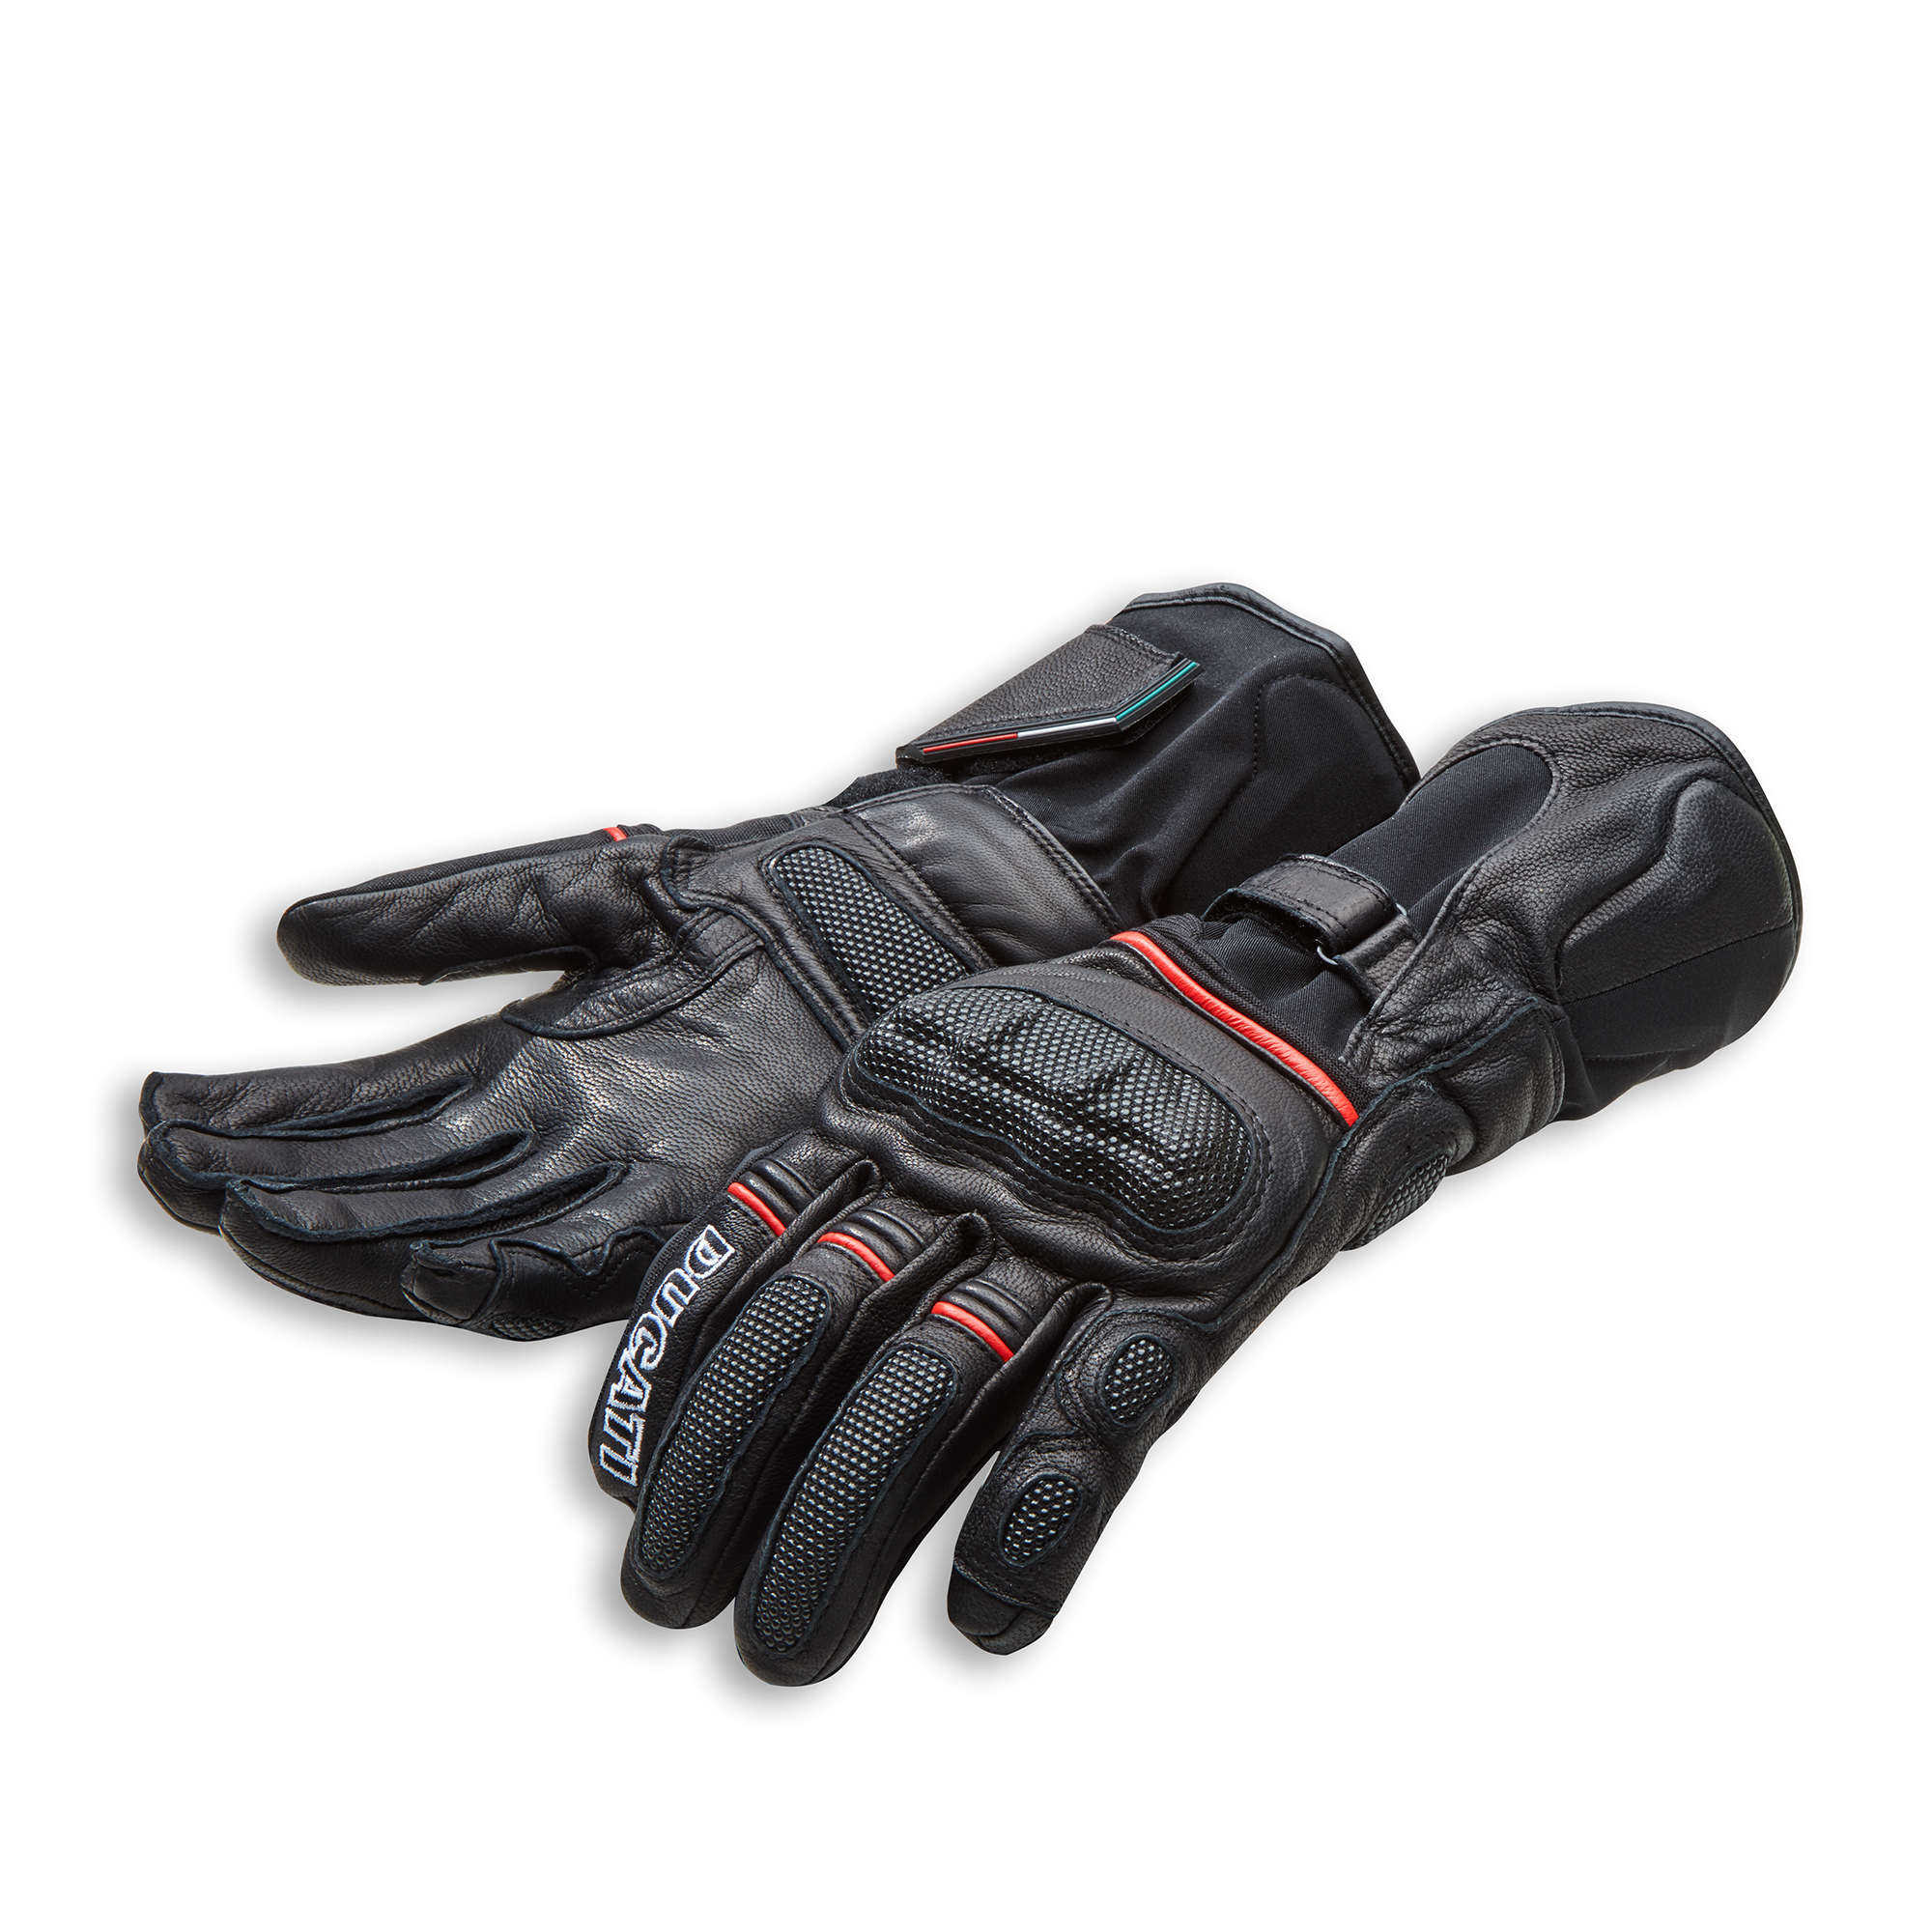 Strada C4 - Fabric-leather gloves 981040072